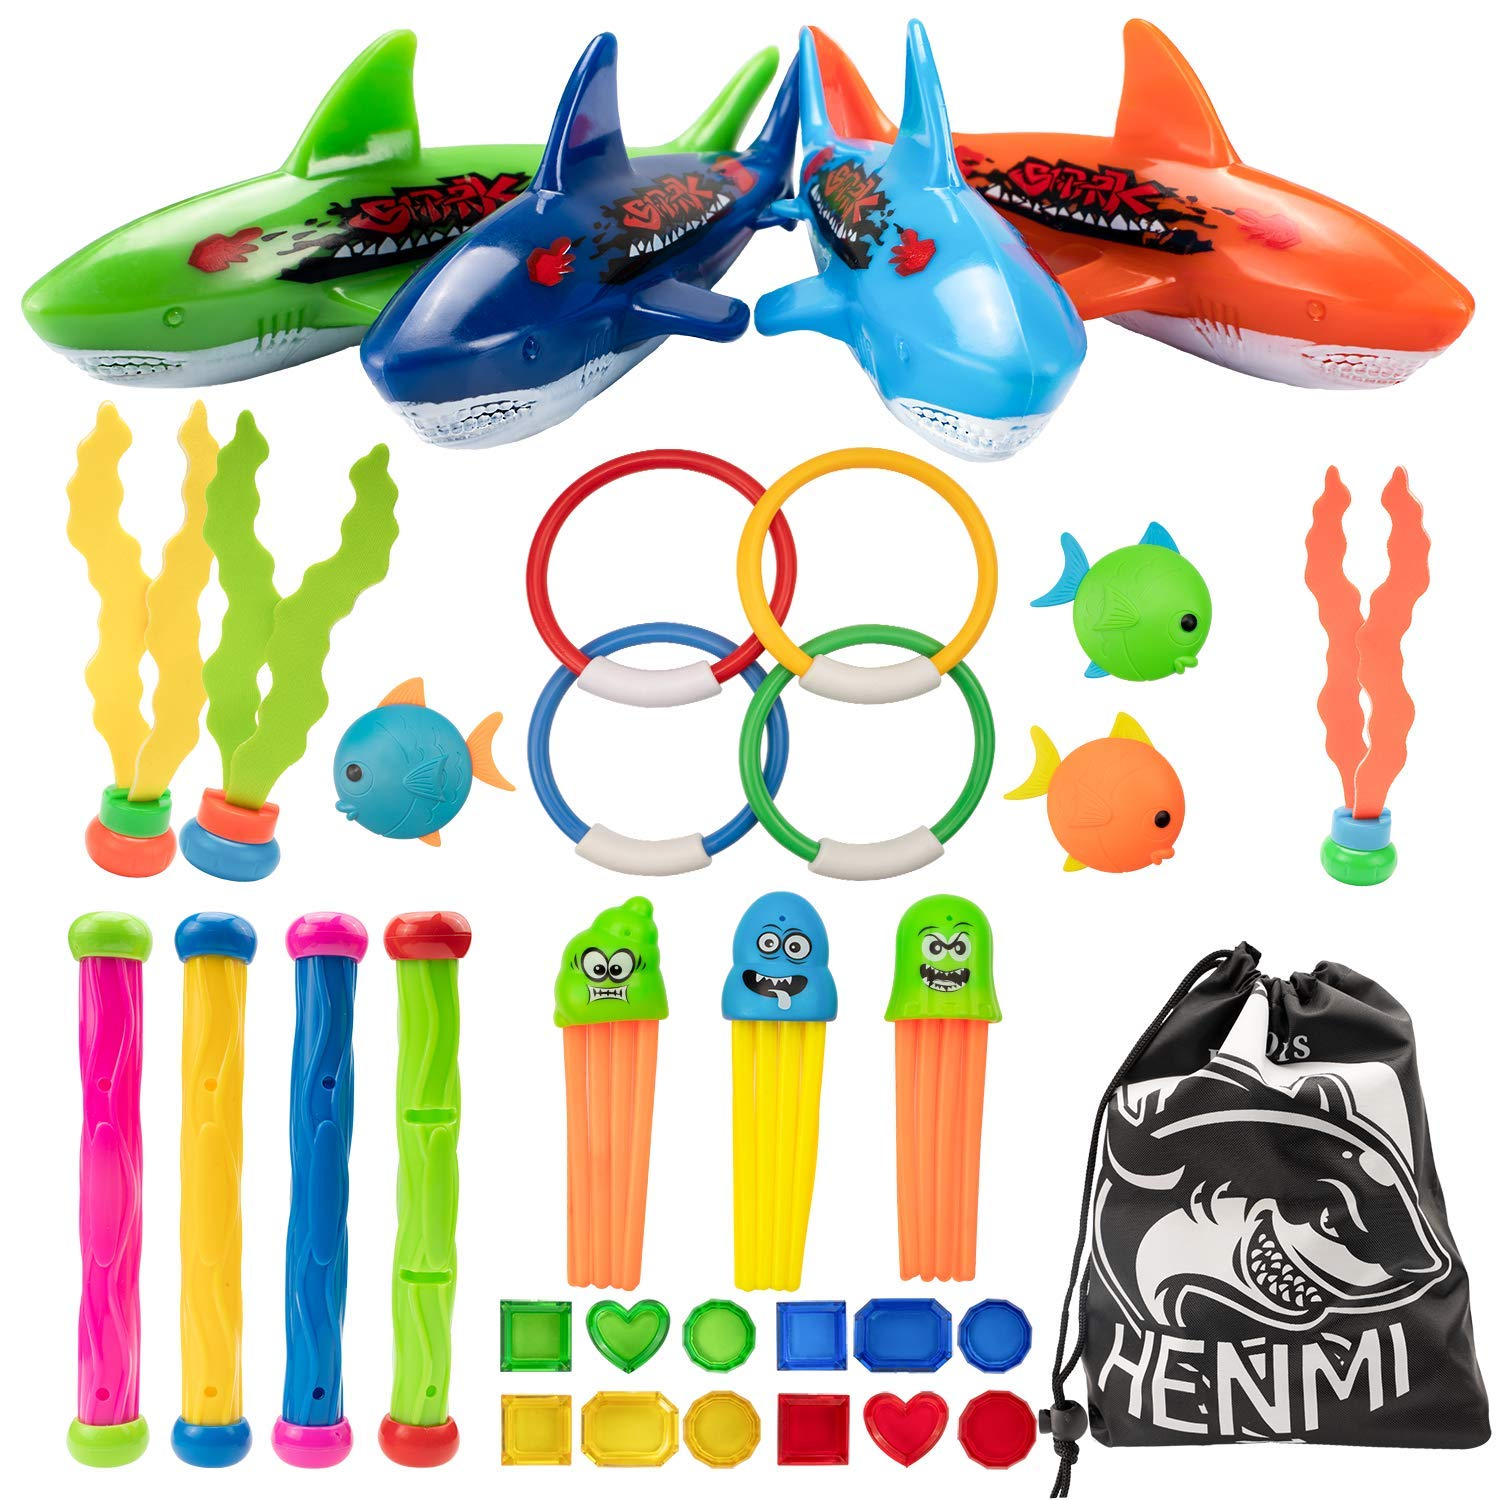 HENMI 34 PCS Swimming Pool Diving Toys with Storage Bag Underwater Summer Dive Toys with Diving Rings Diving Sticks Stringy Octopus Torpedo Bandits Diving Fish Under Water Treasures Gift for Kids